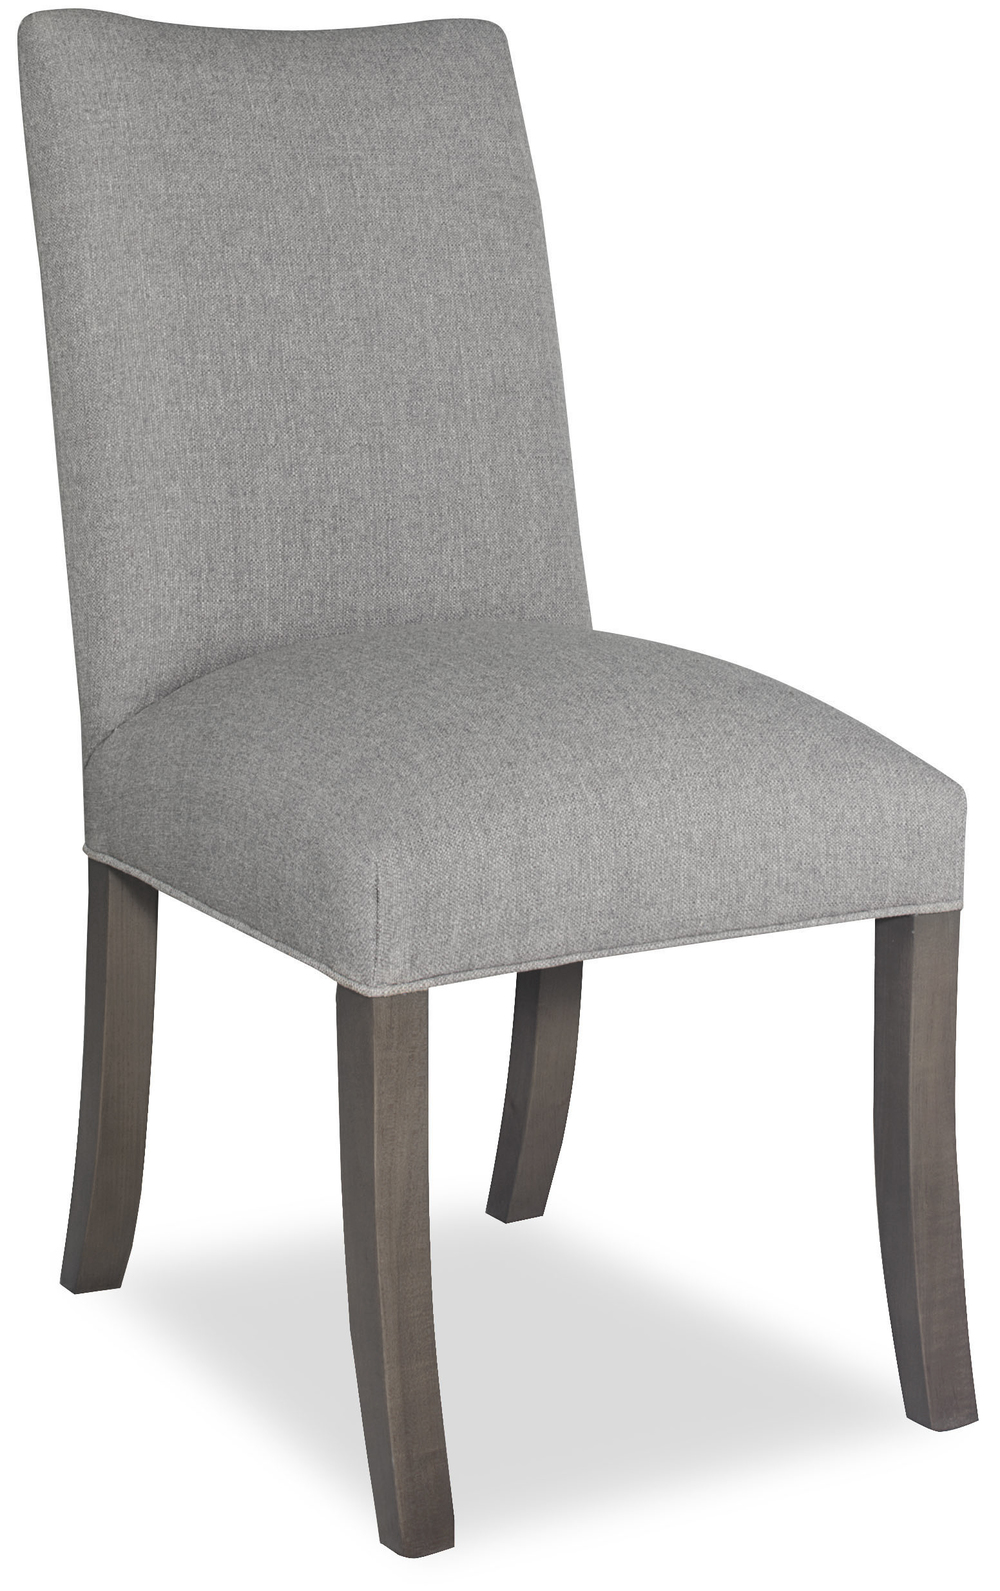 Parker Southern - Pierce Armless Chair